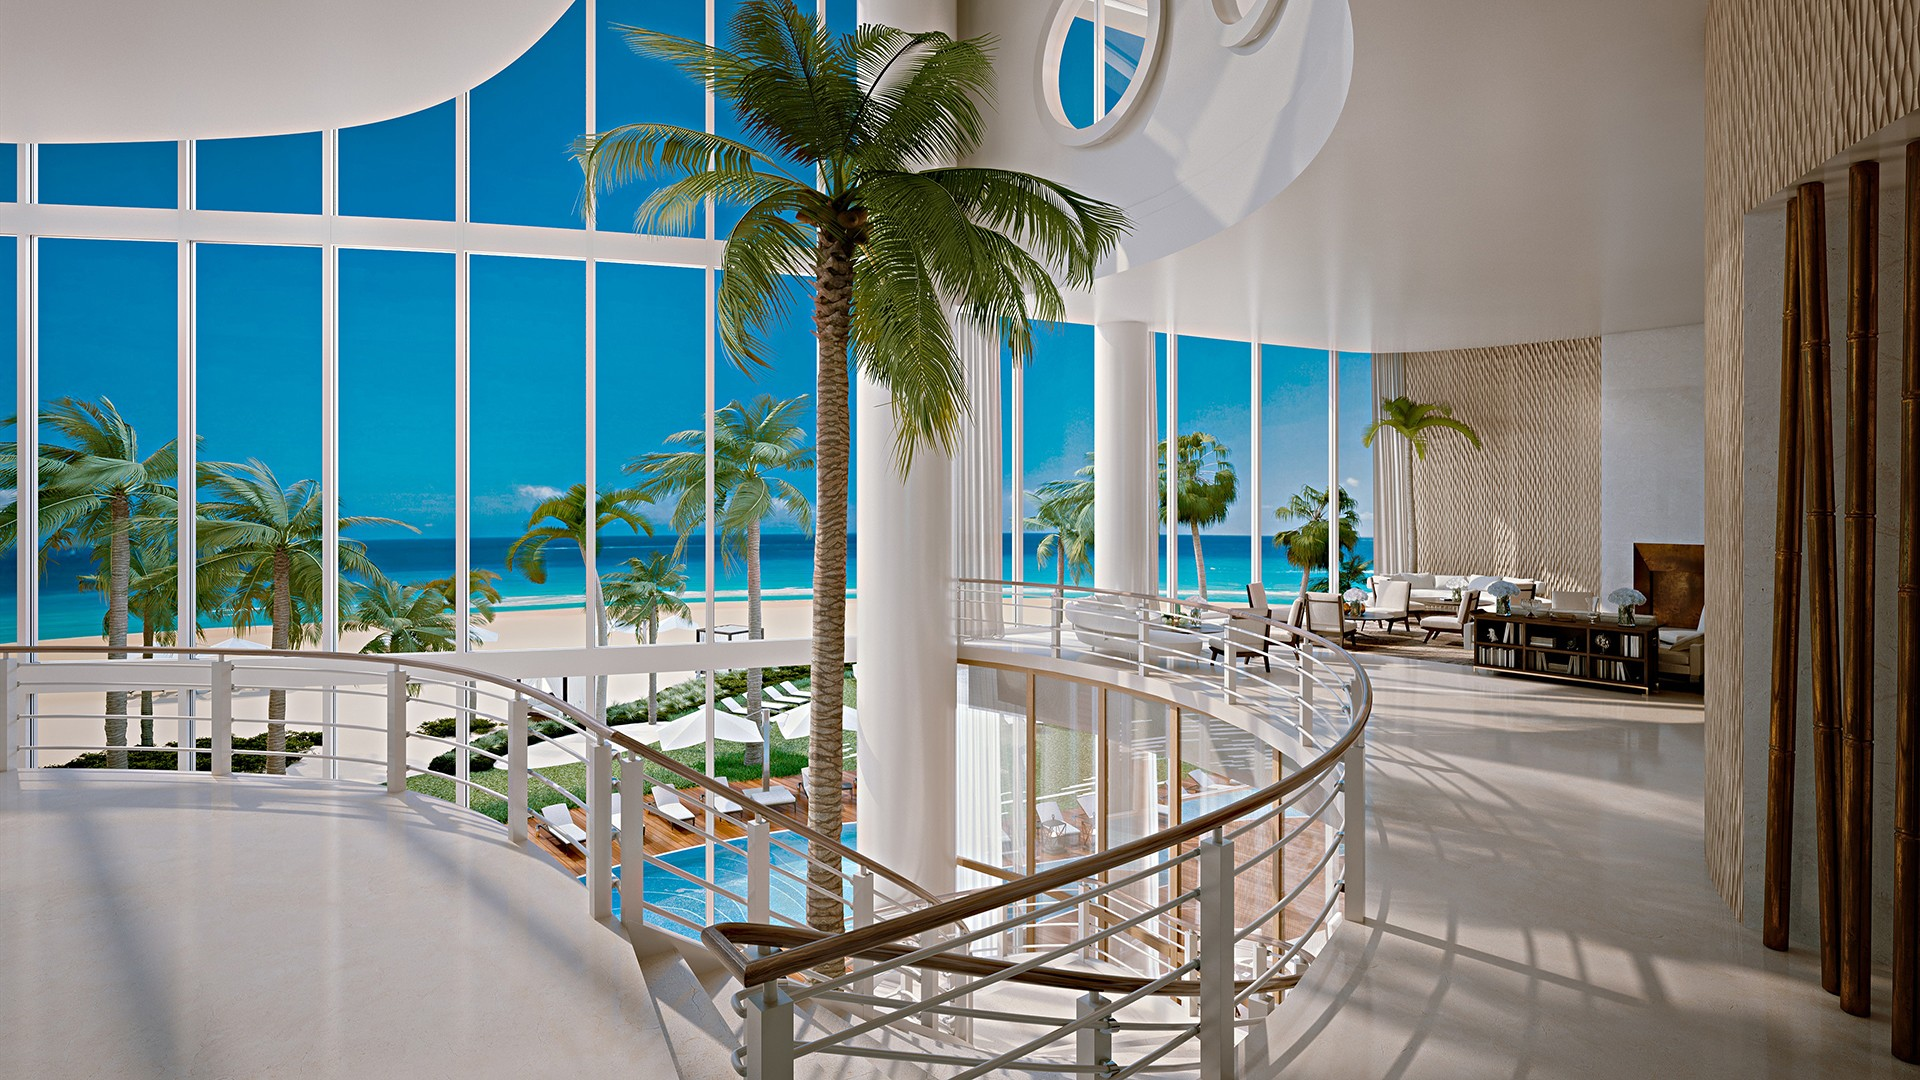 The Ritz-Carlton Residences, Sunny Isles Beach Secure's Registration in New York to Market to NYC Buyers